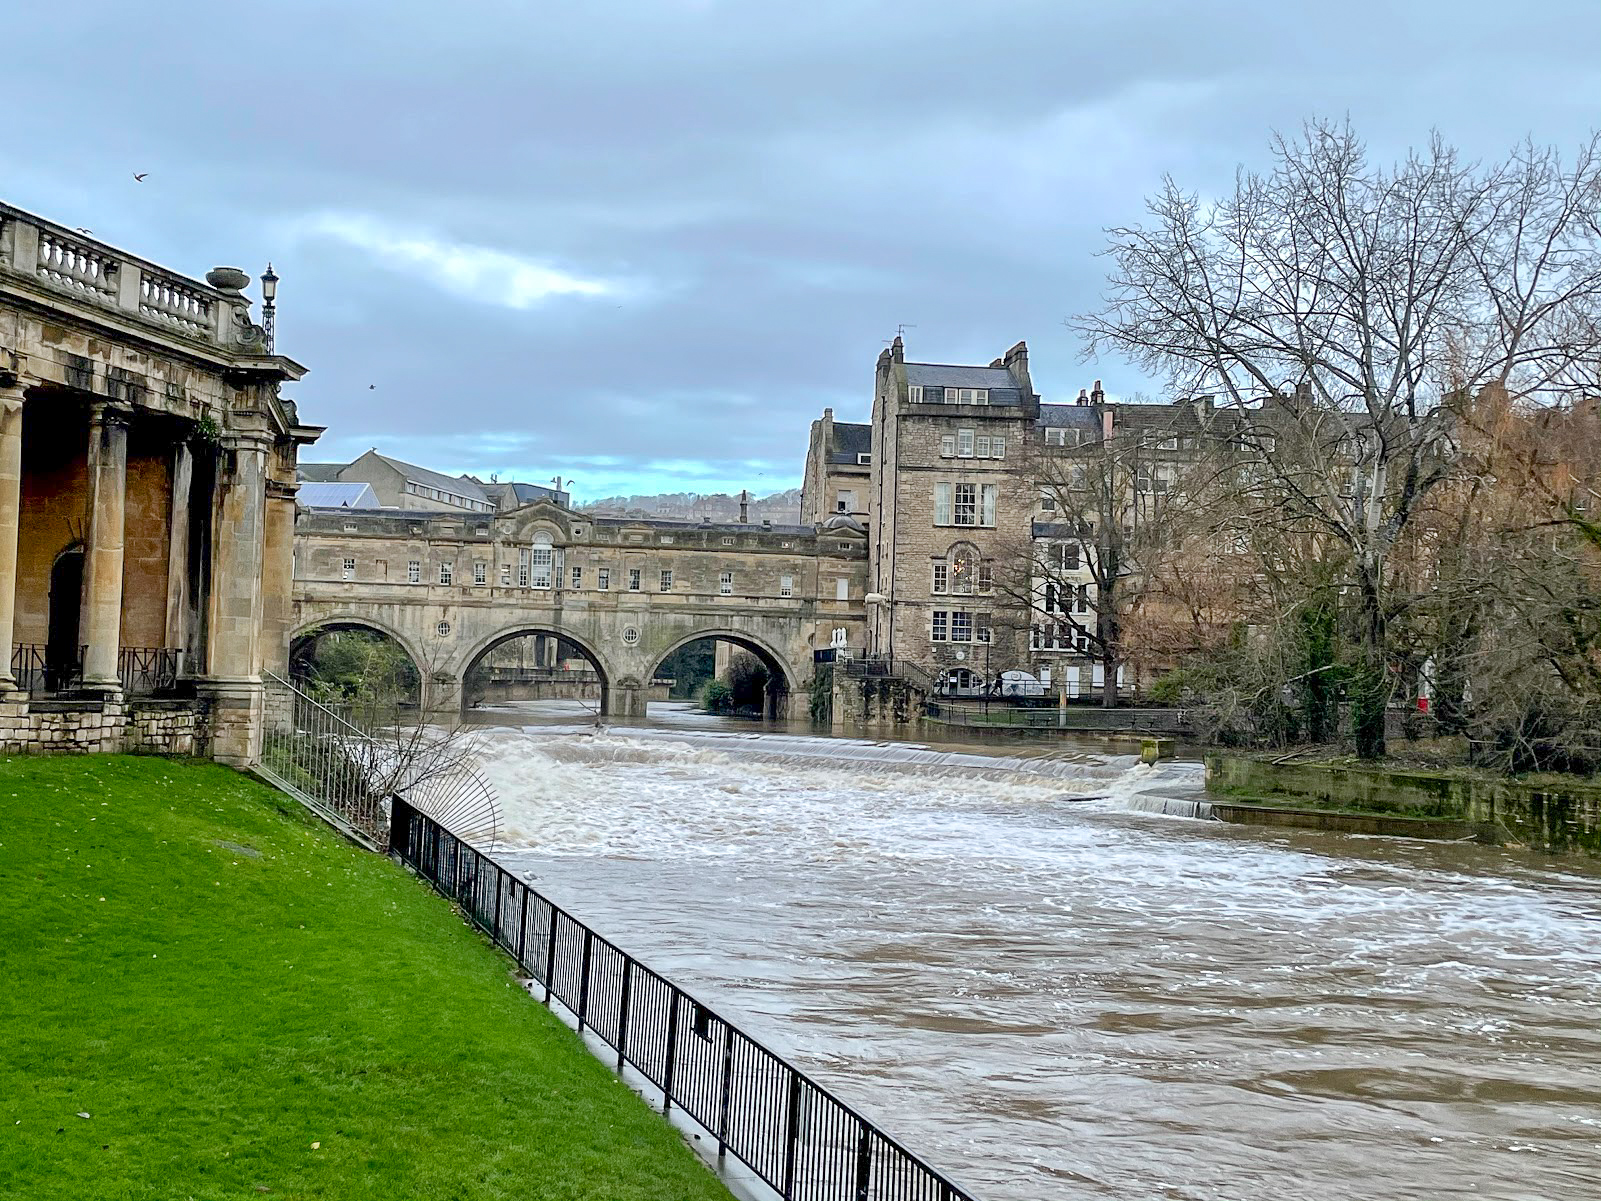 A view from Parade Gardens of the River Avon in Bath flows over the wier with Pulteney Bridge in the background